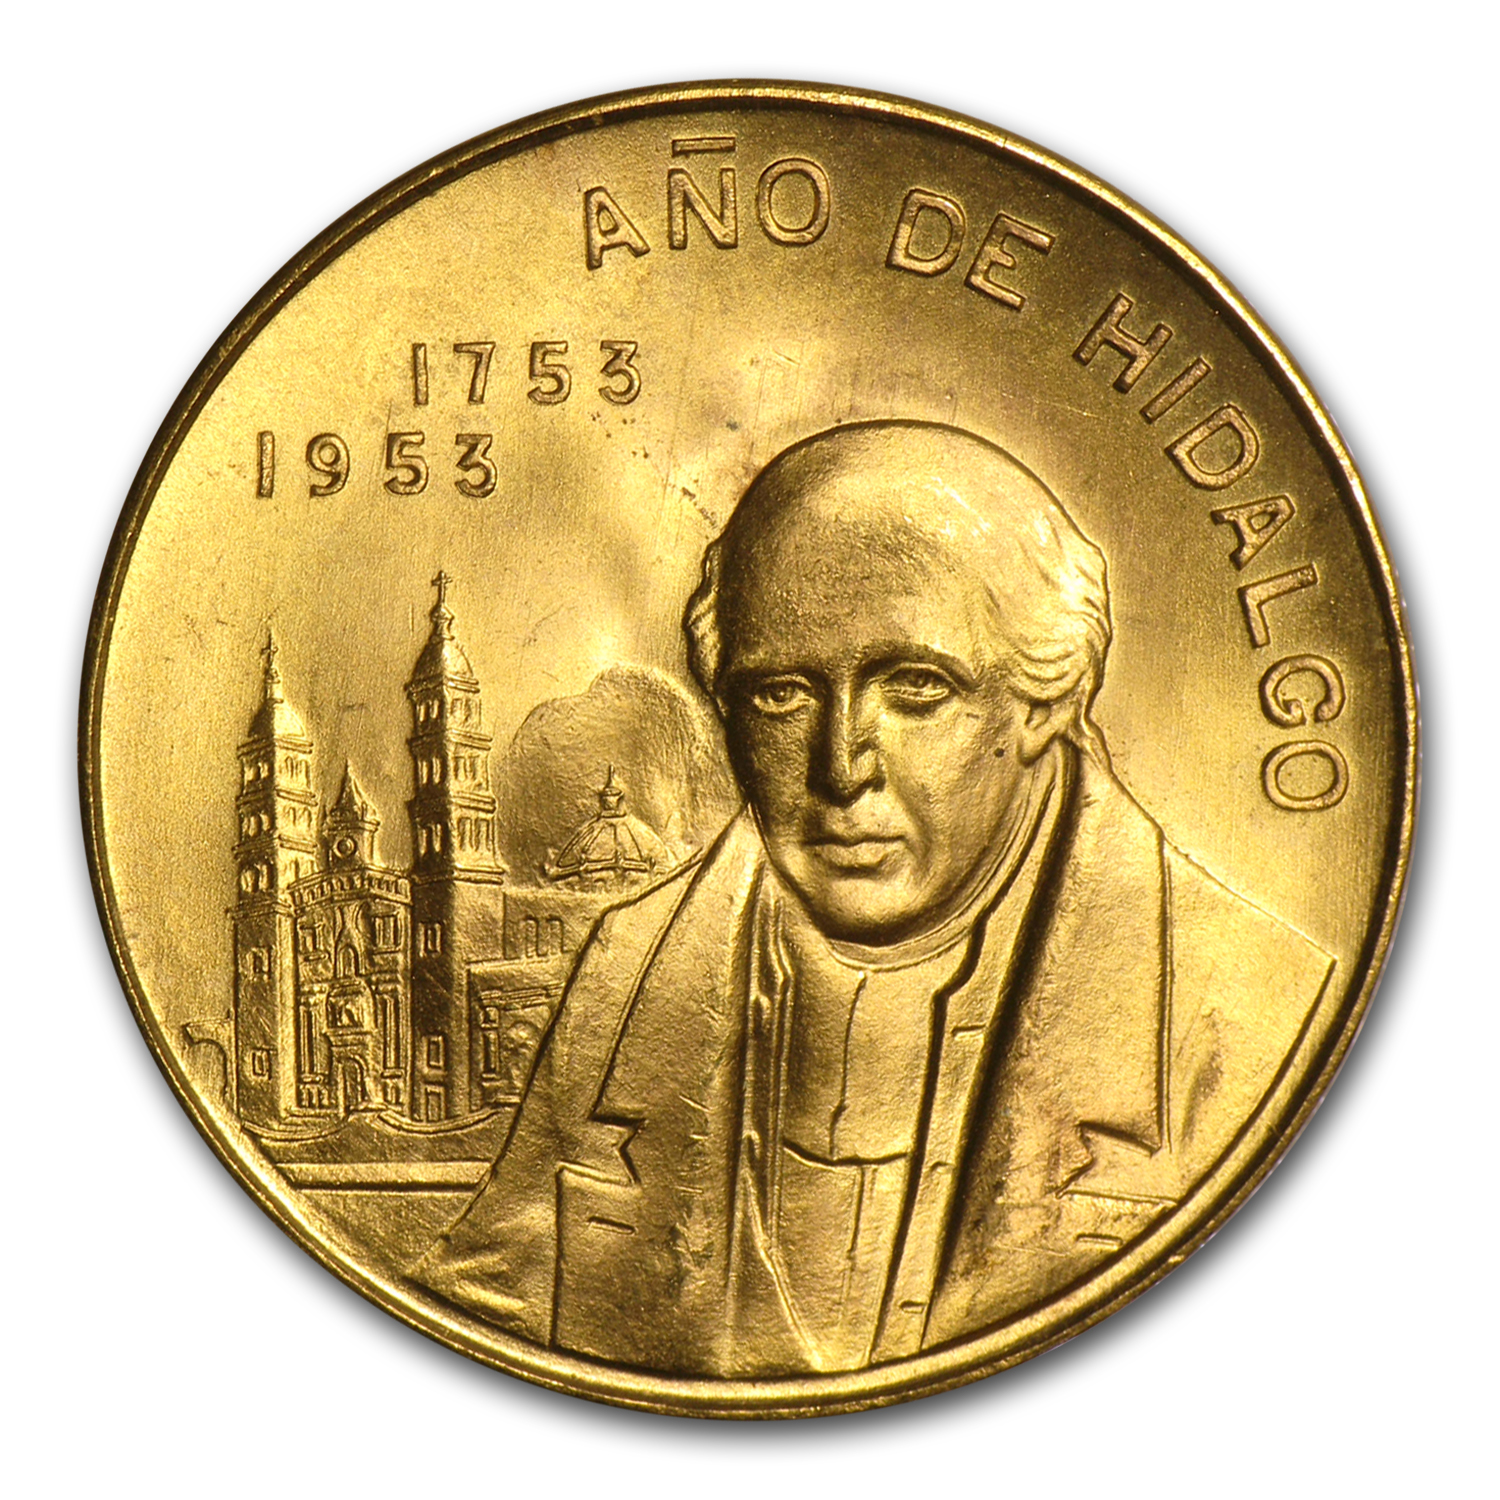 1953 Mexico Gold Year of Hidalgo Medal